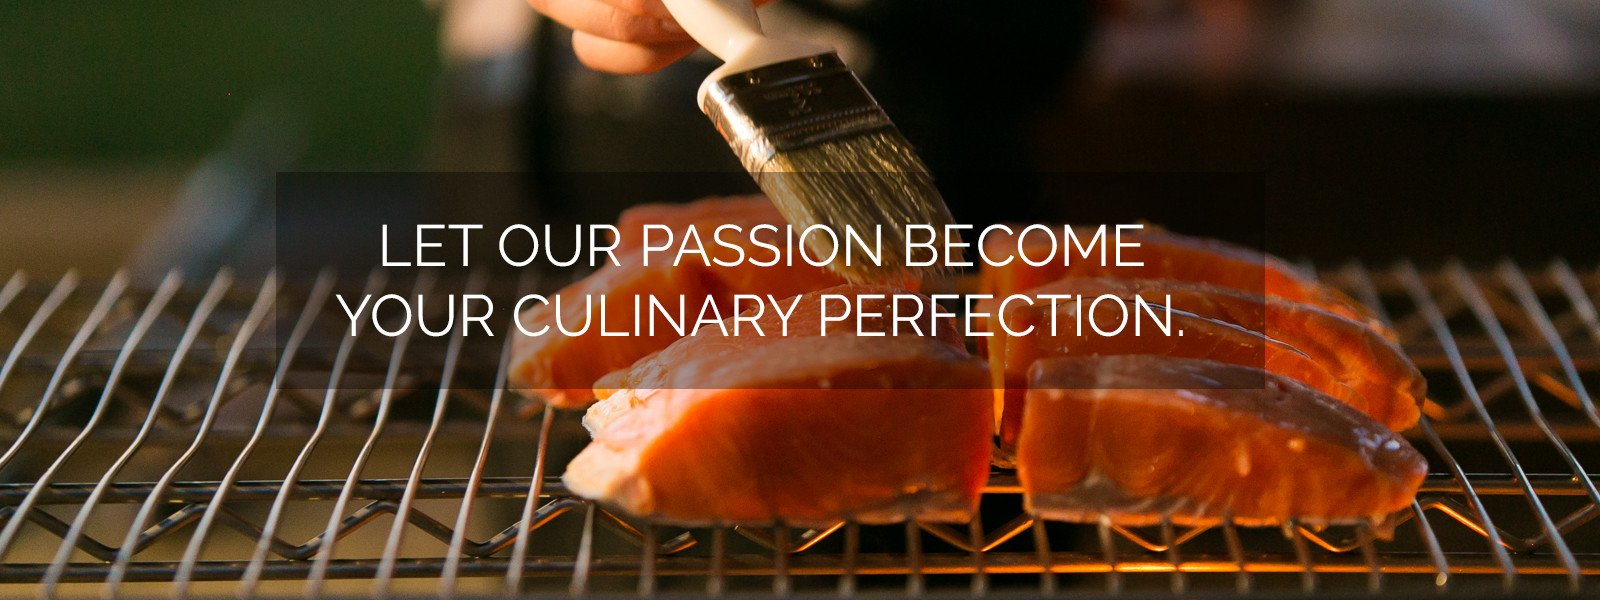 Let our passion become your culinary perfection.